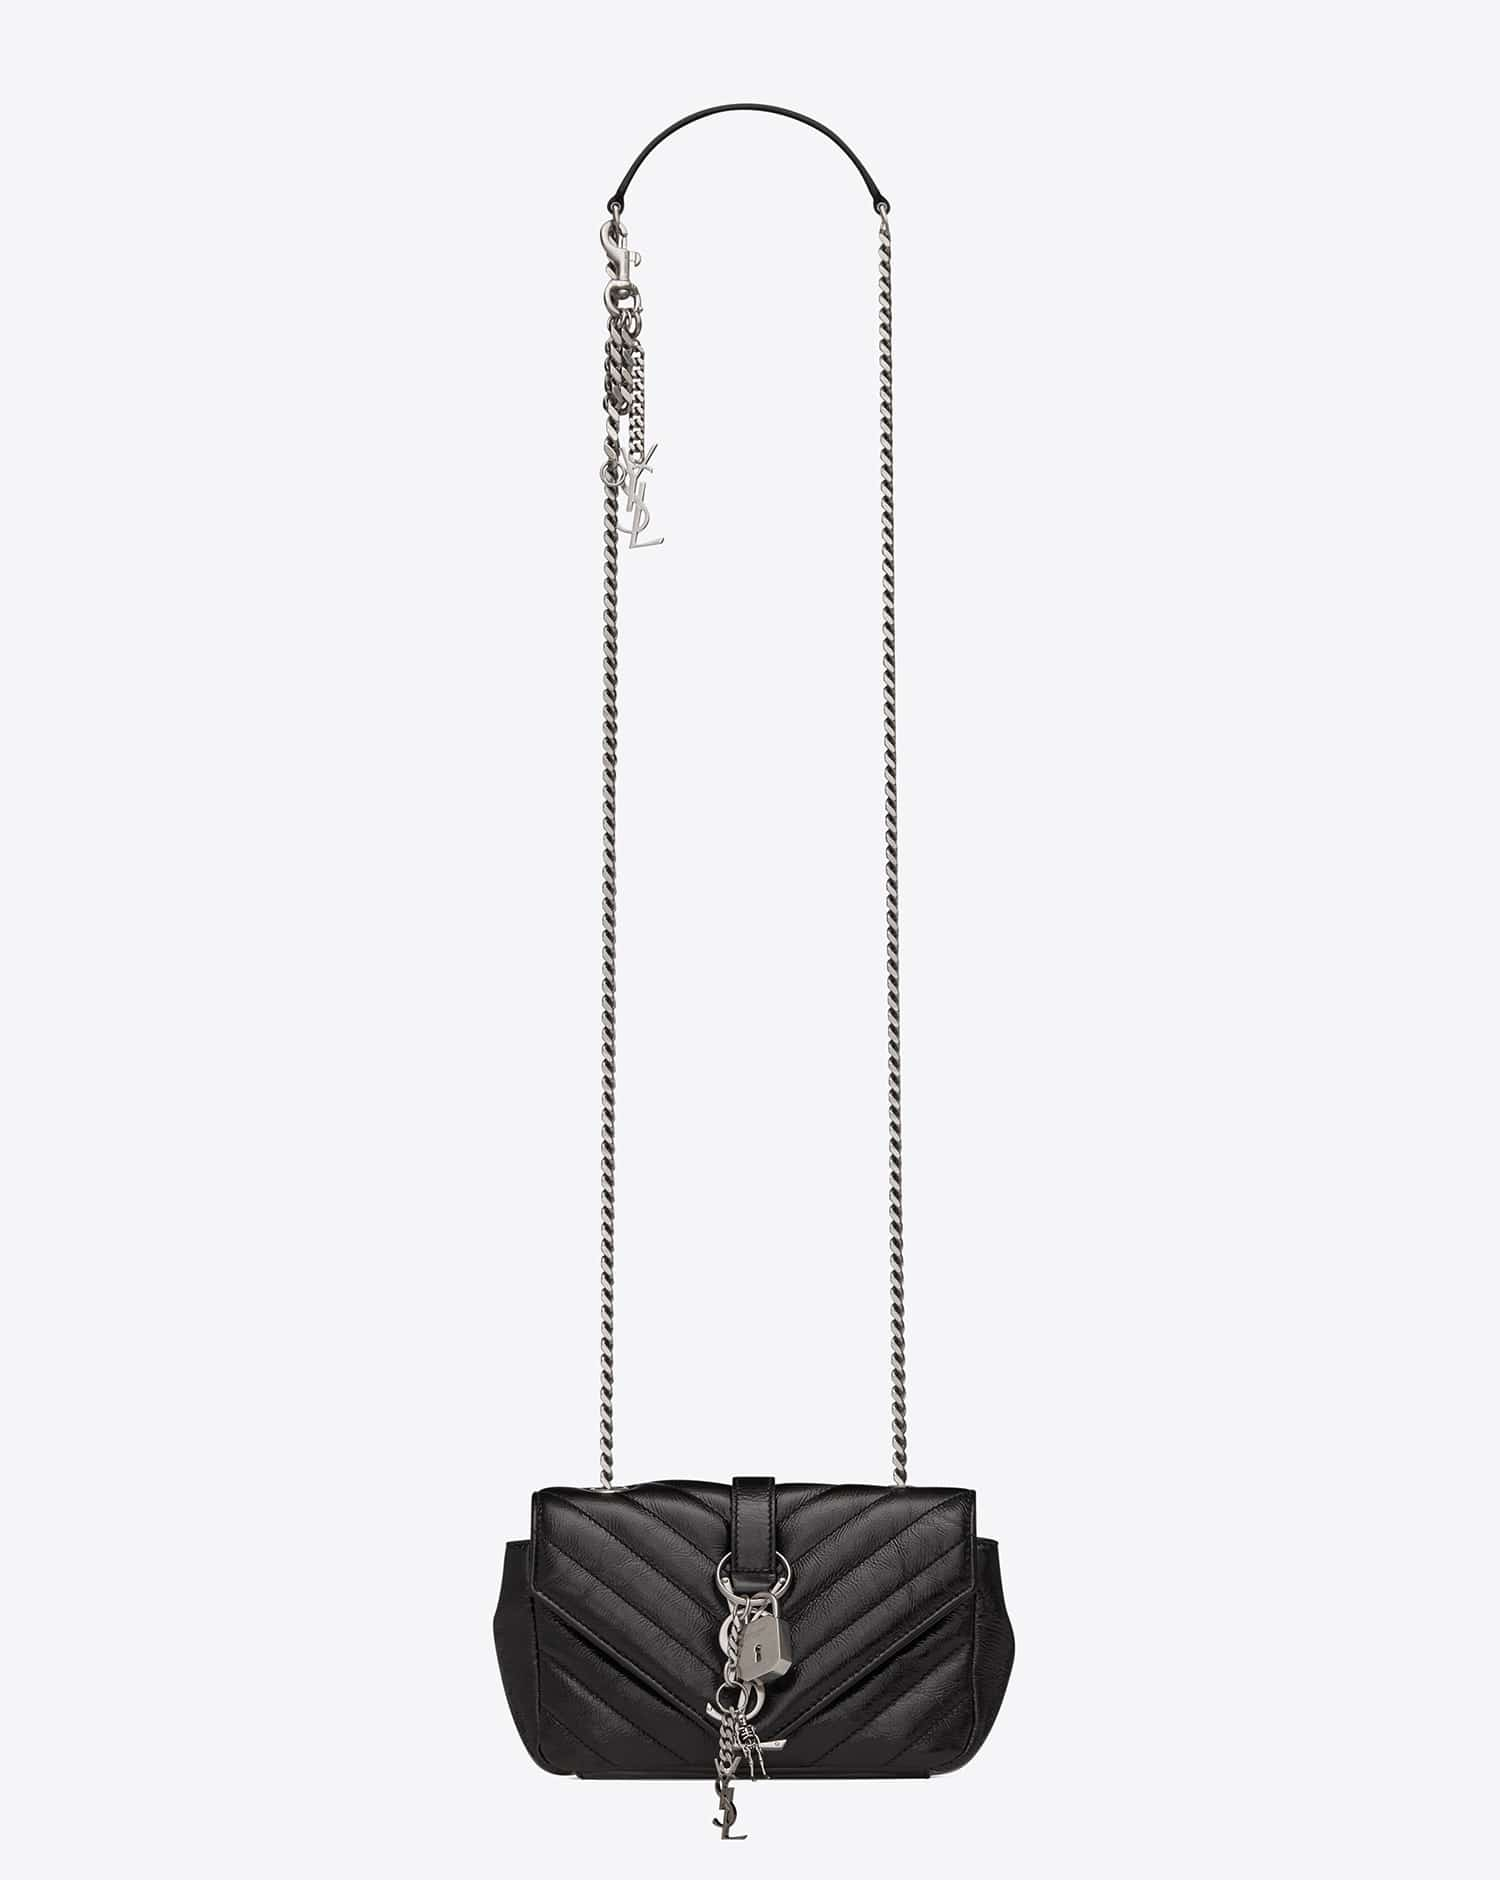 54b6423e8af1c Saint Laurent Fall Winter 2015 Bag Collection Featuring Punk Chain ...